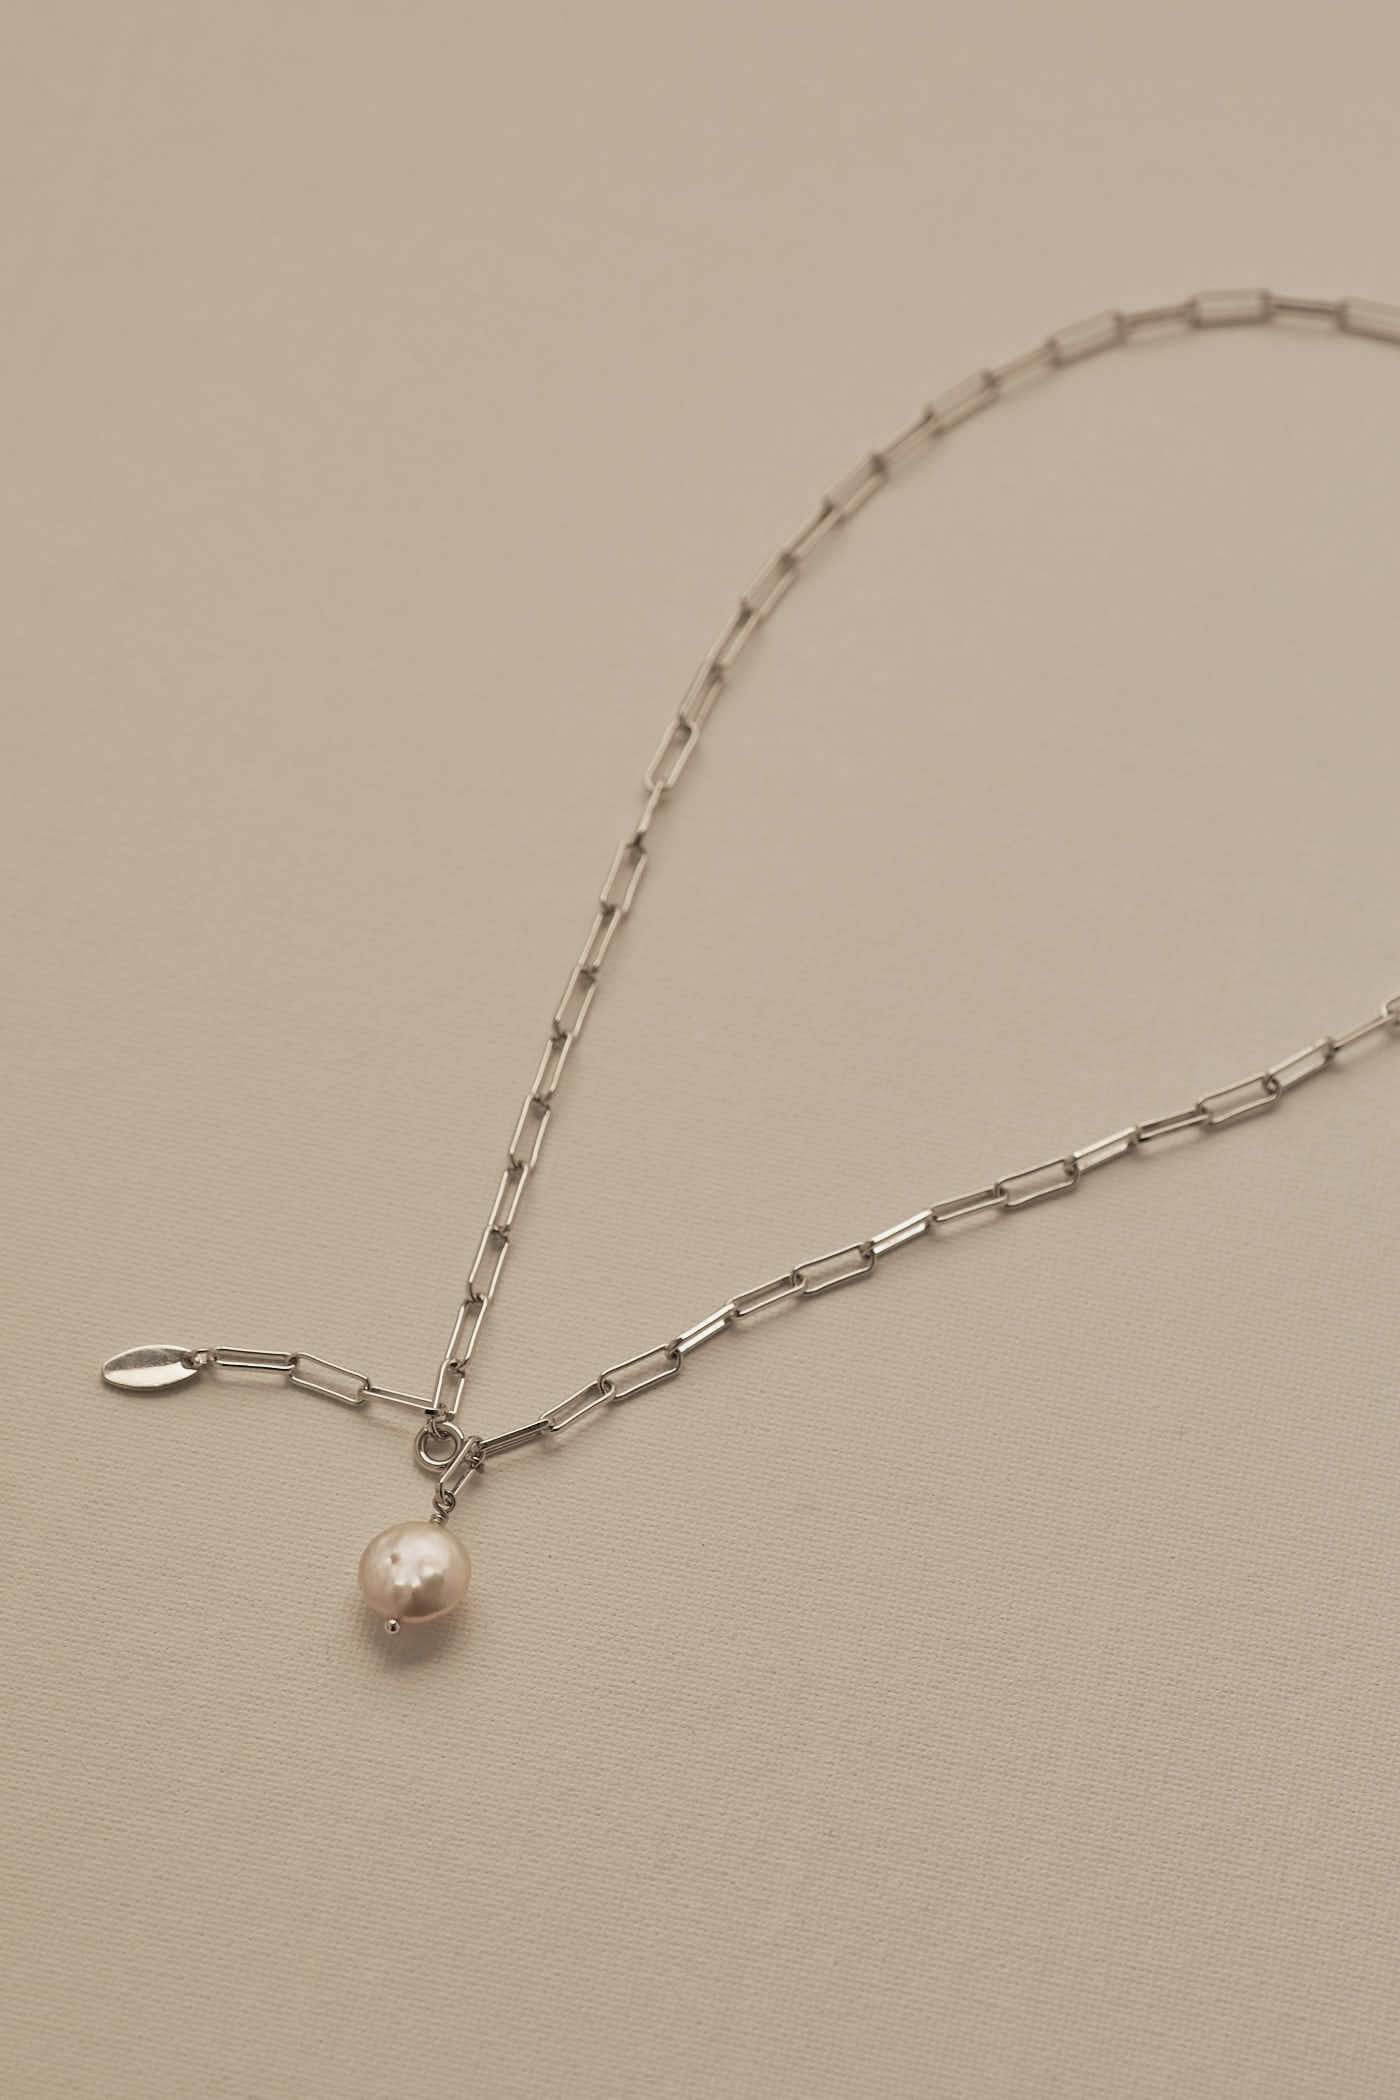 Olin Chain Necklace